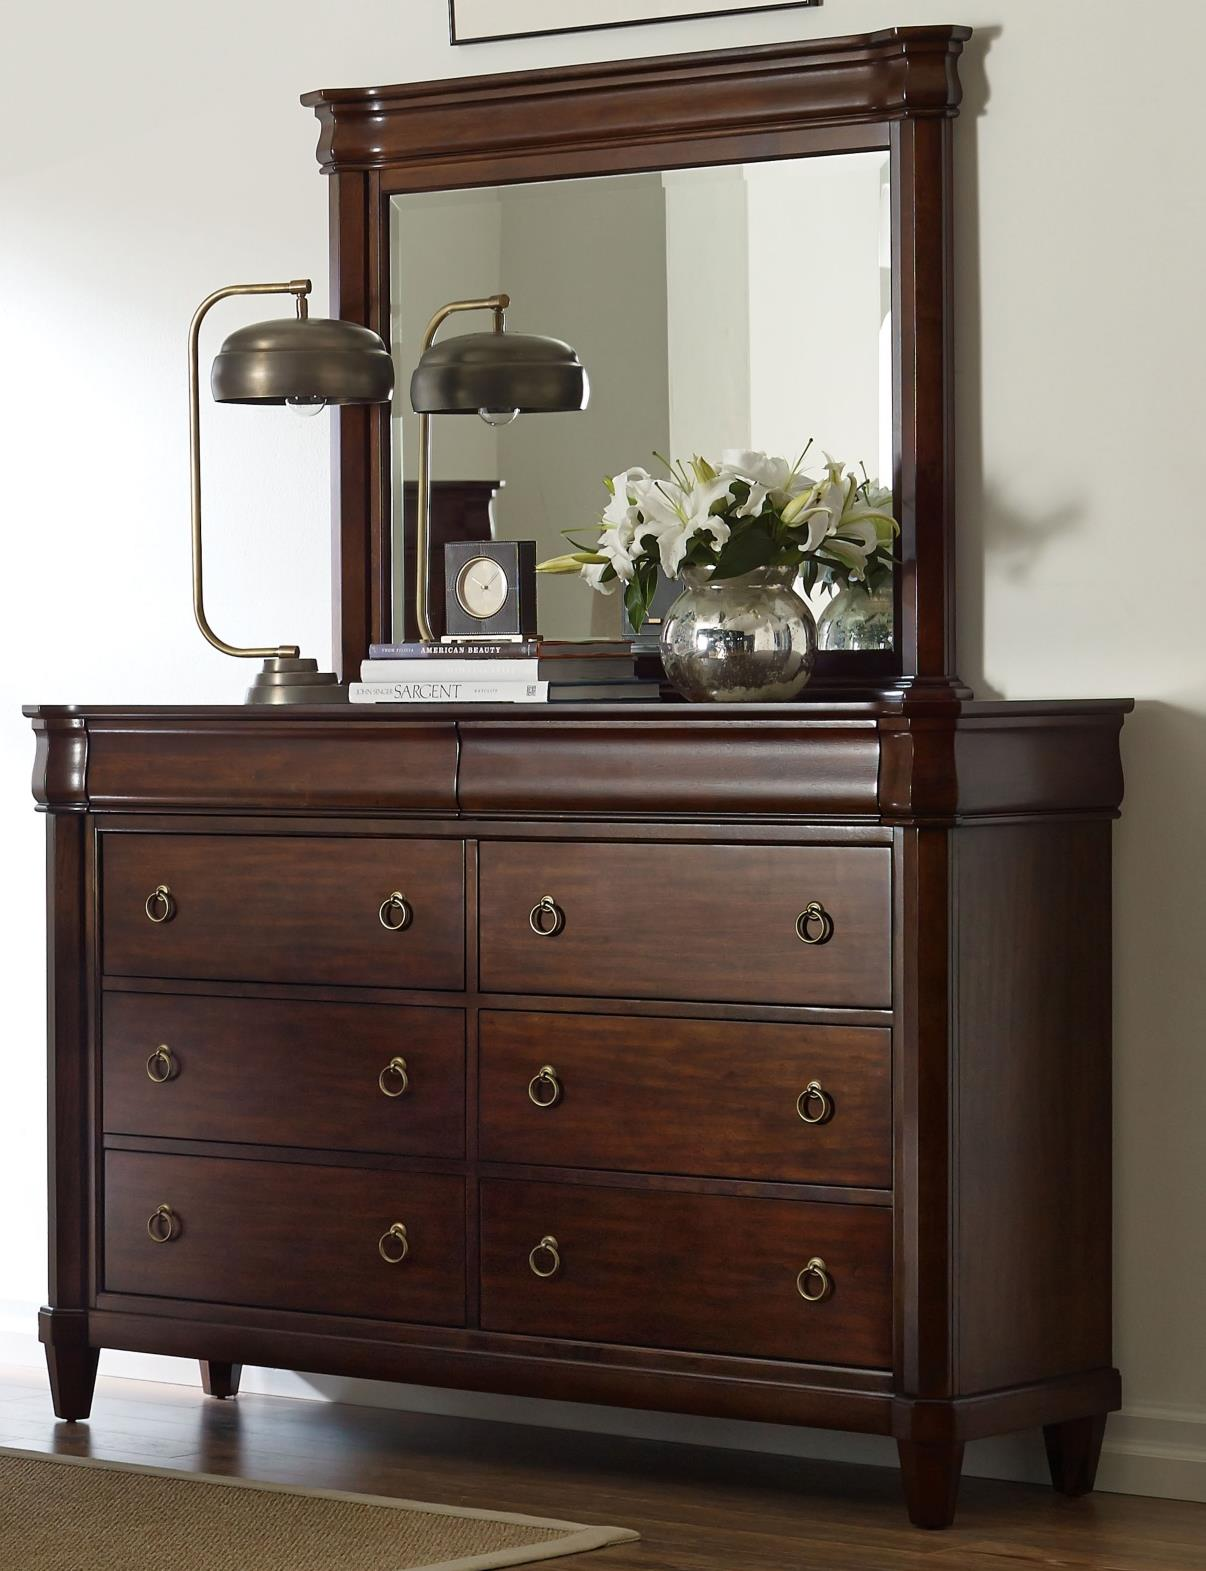 Broyhill Furniture Aryell Dresser + Mirror - Item Number: 4906-230+236